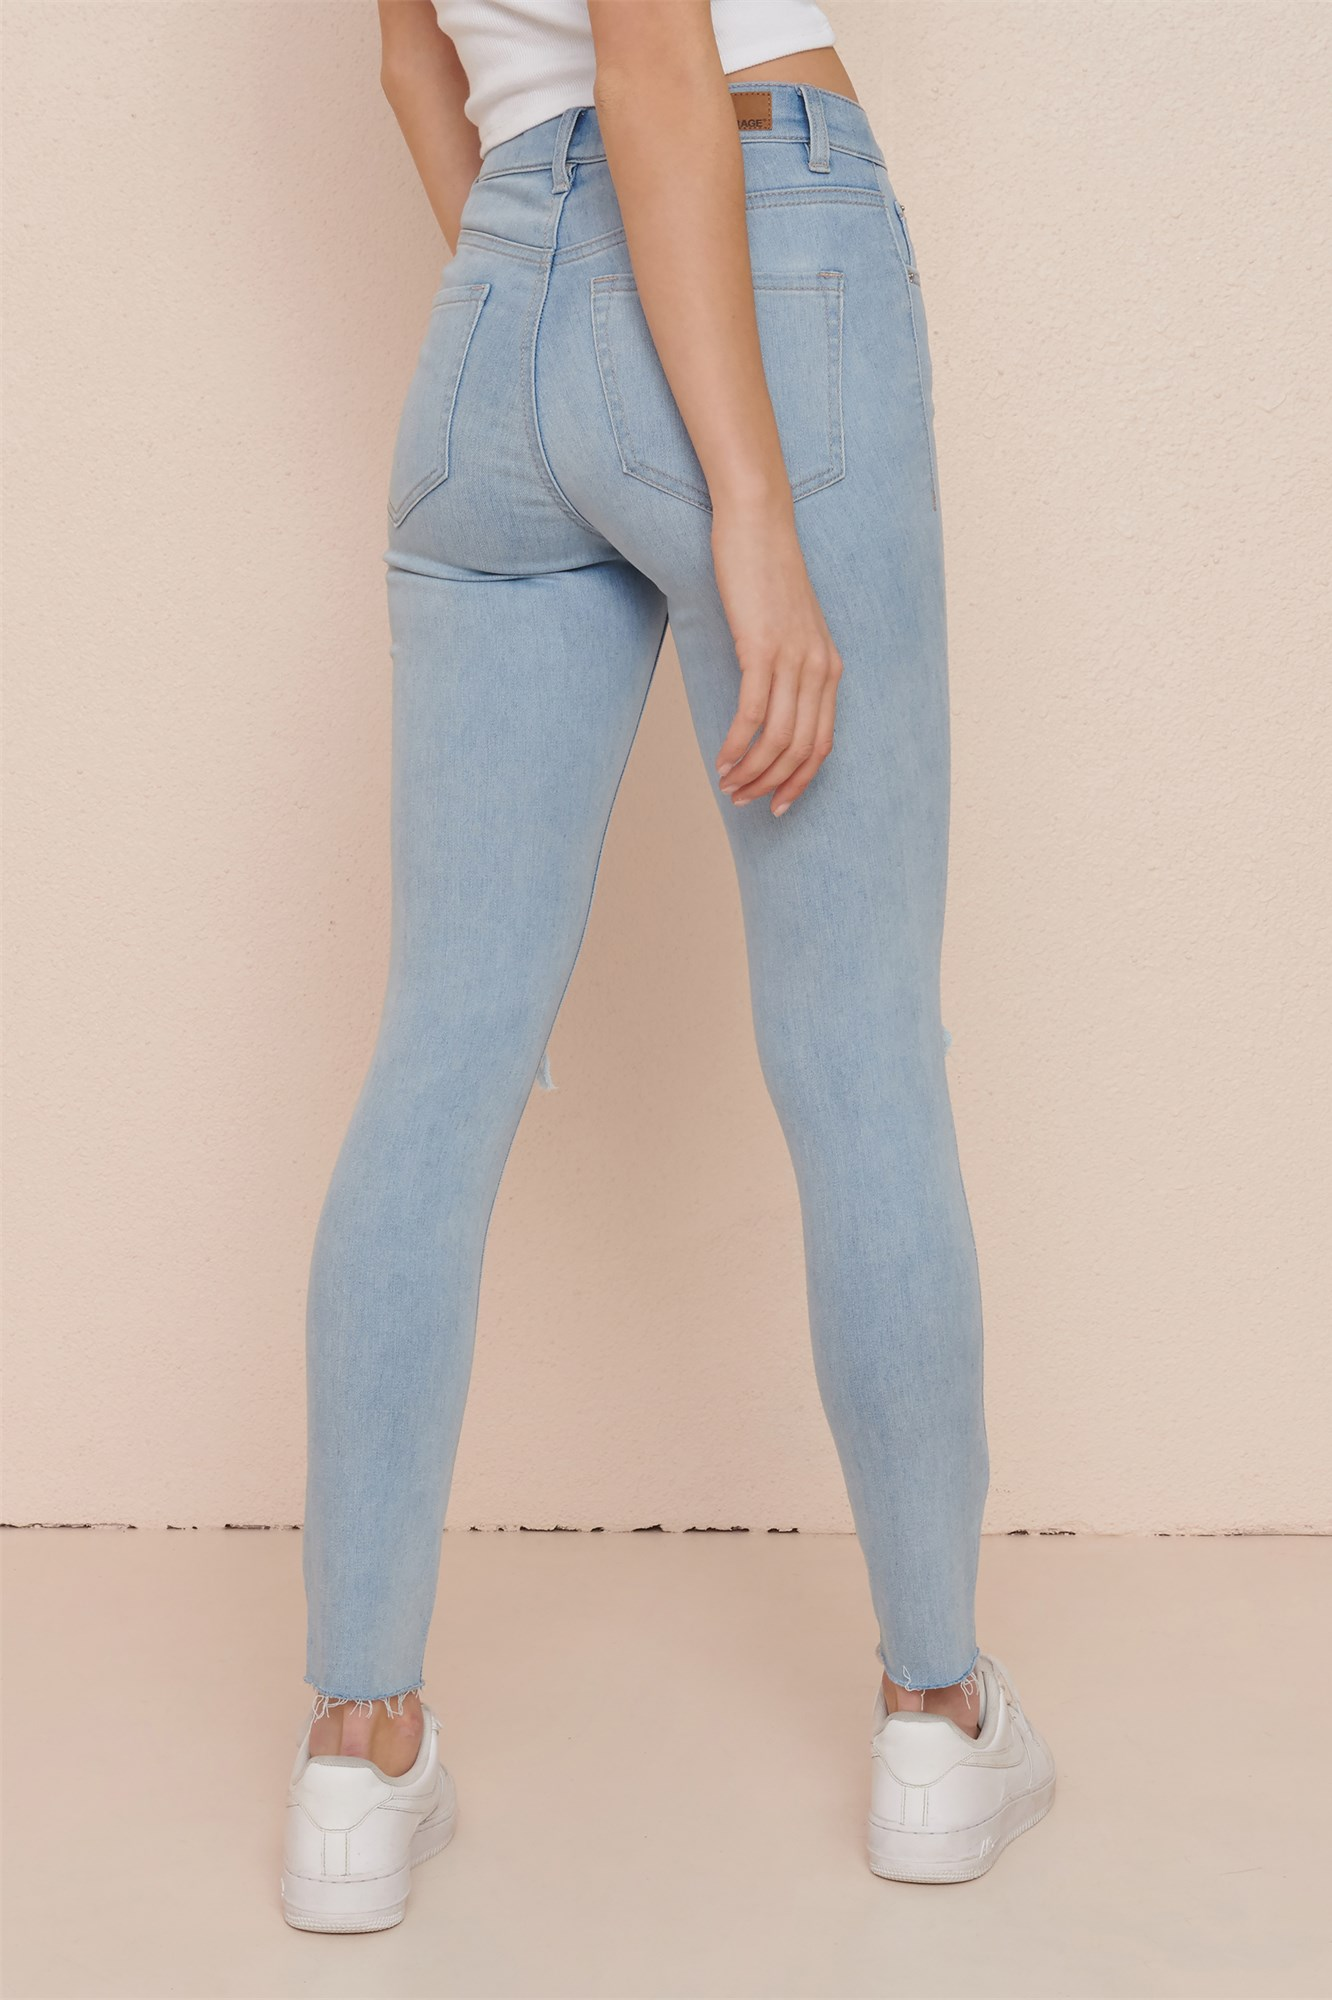 Image 3 of High Rise Jegging - All Bright Bleach - FINAL SALE